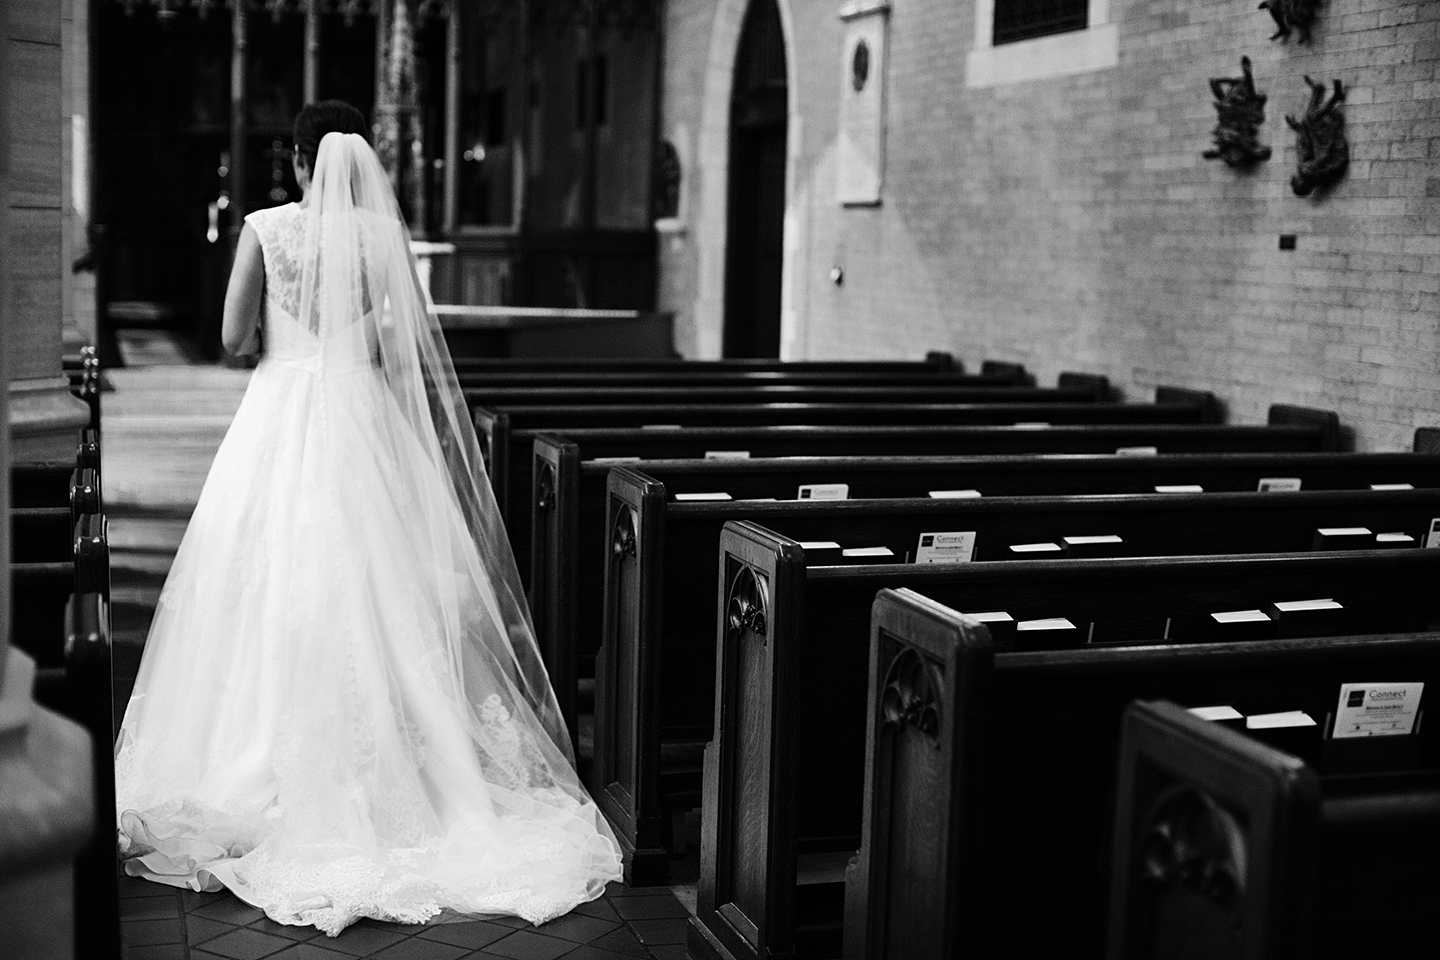 St. Mark's Episcopal Cathedral Wedding Photos | Photography by Photogen Inc. | Eliesa Johnson | Based in Minneapolis, Minnesota